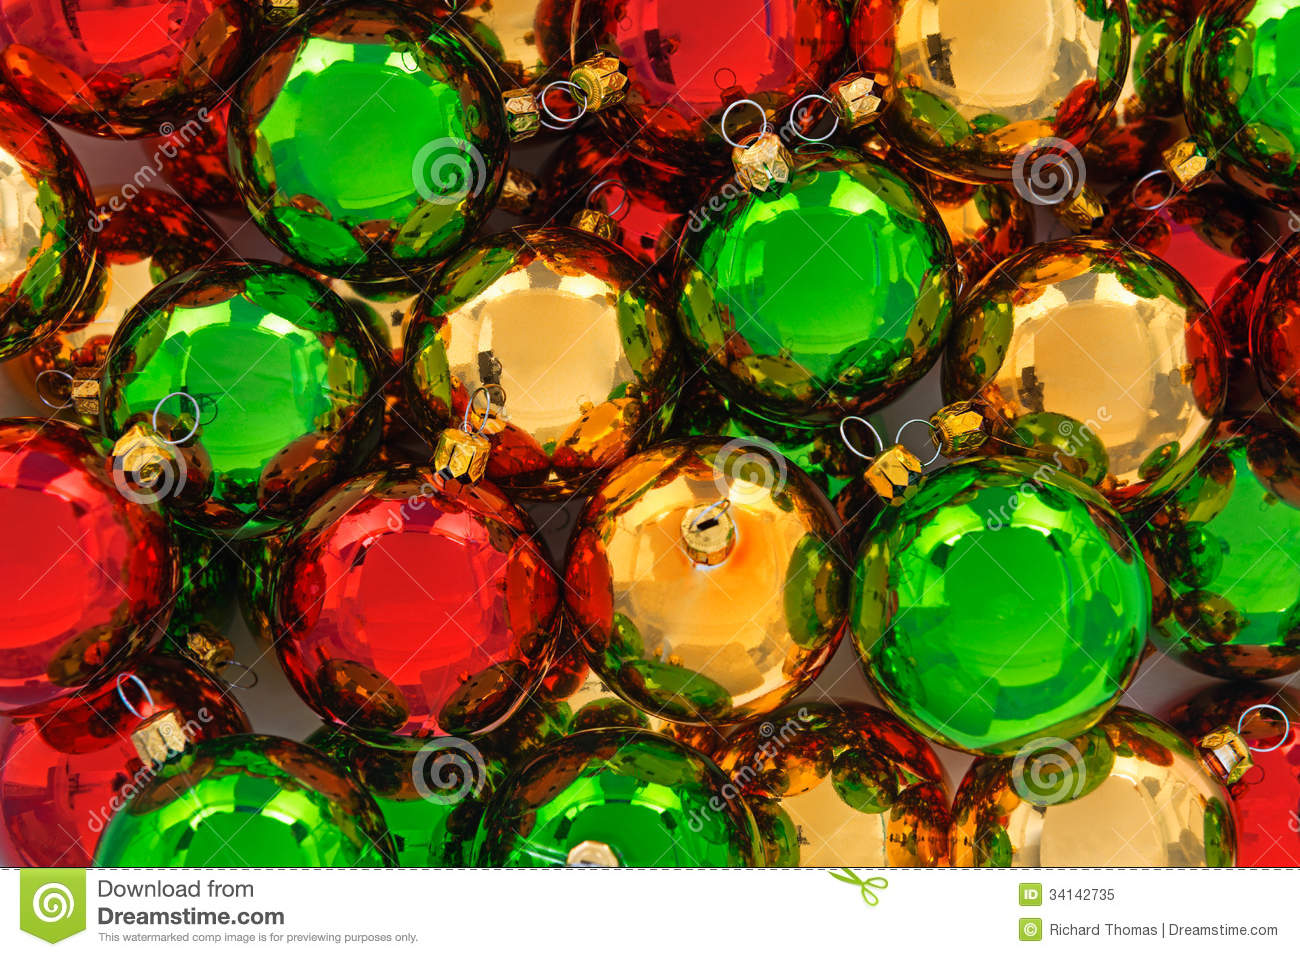 download christmas ornaments stock image image of wallpaper ornaments 34142735